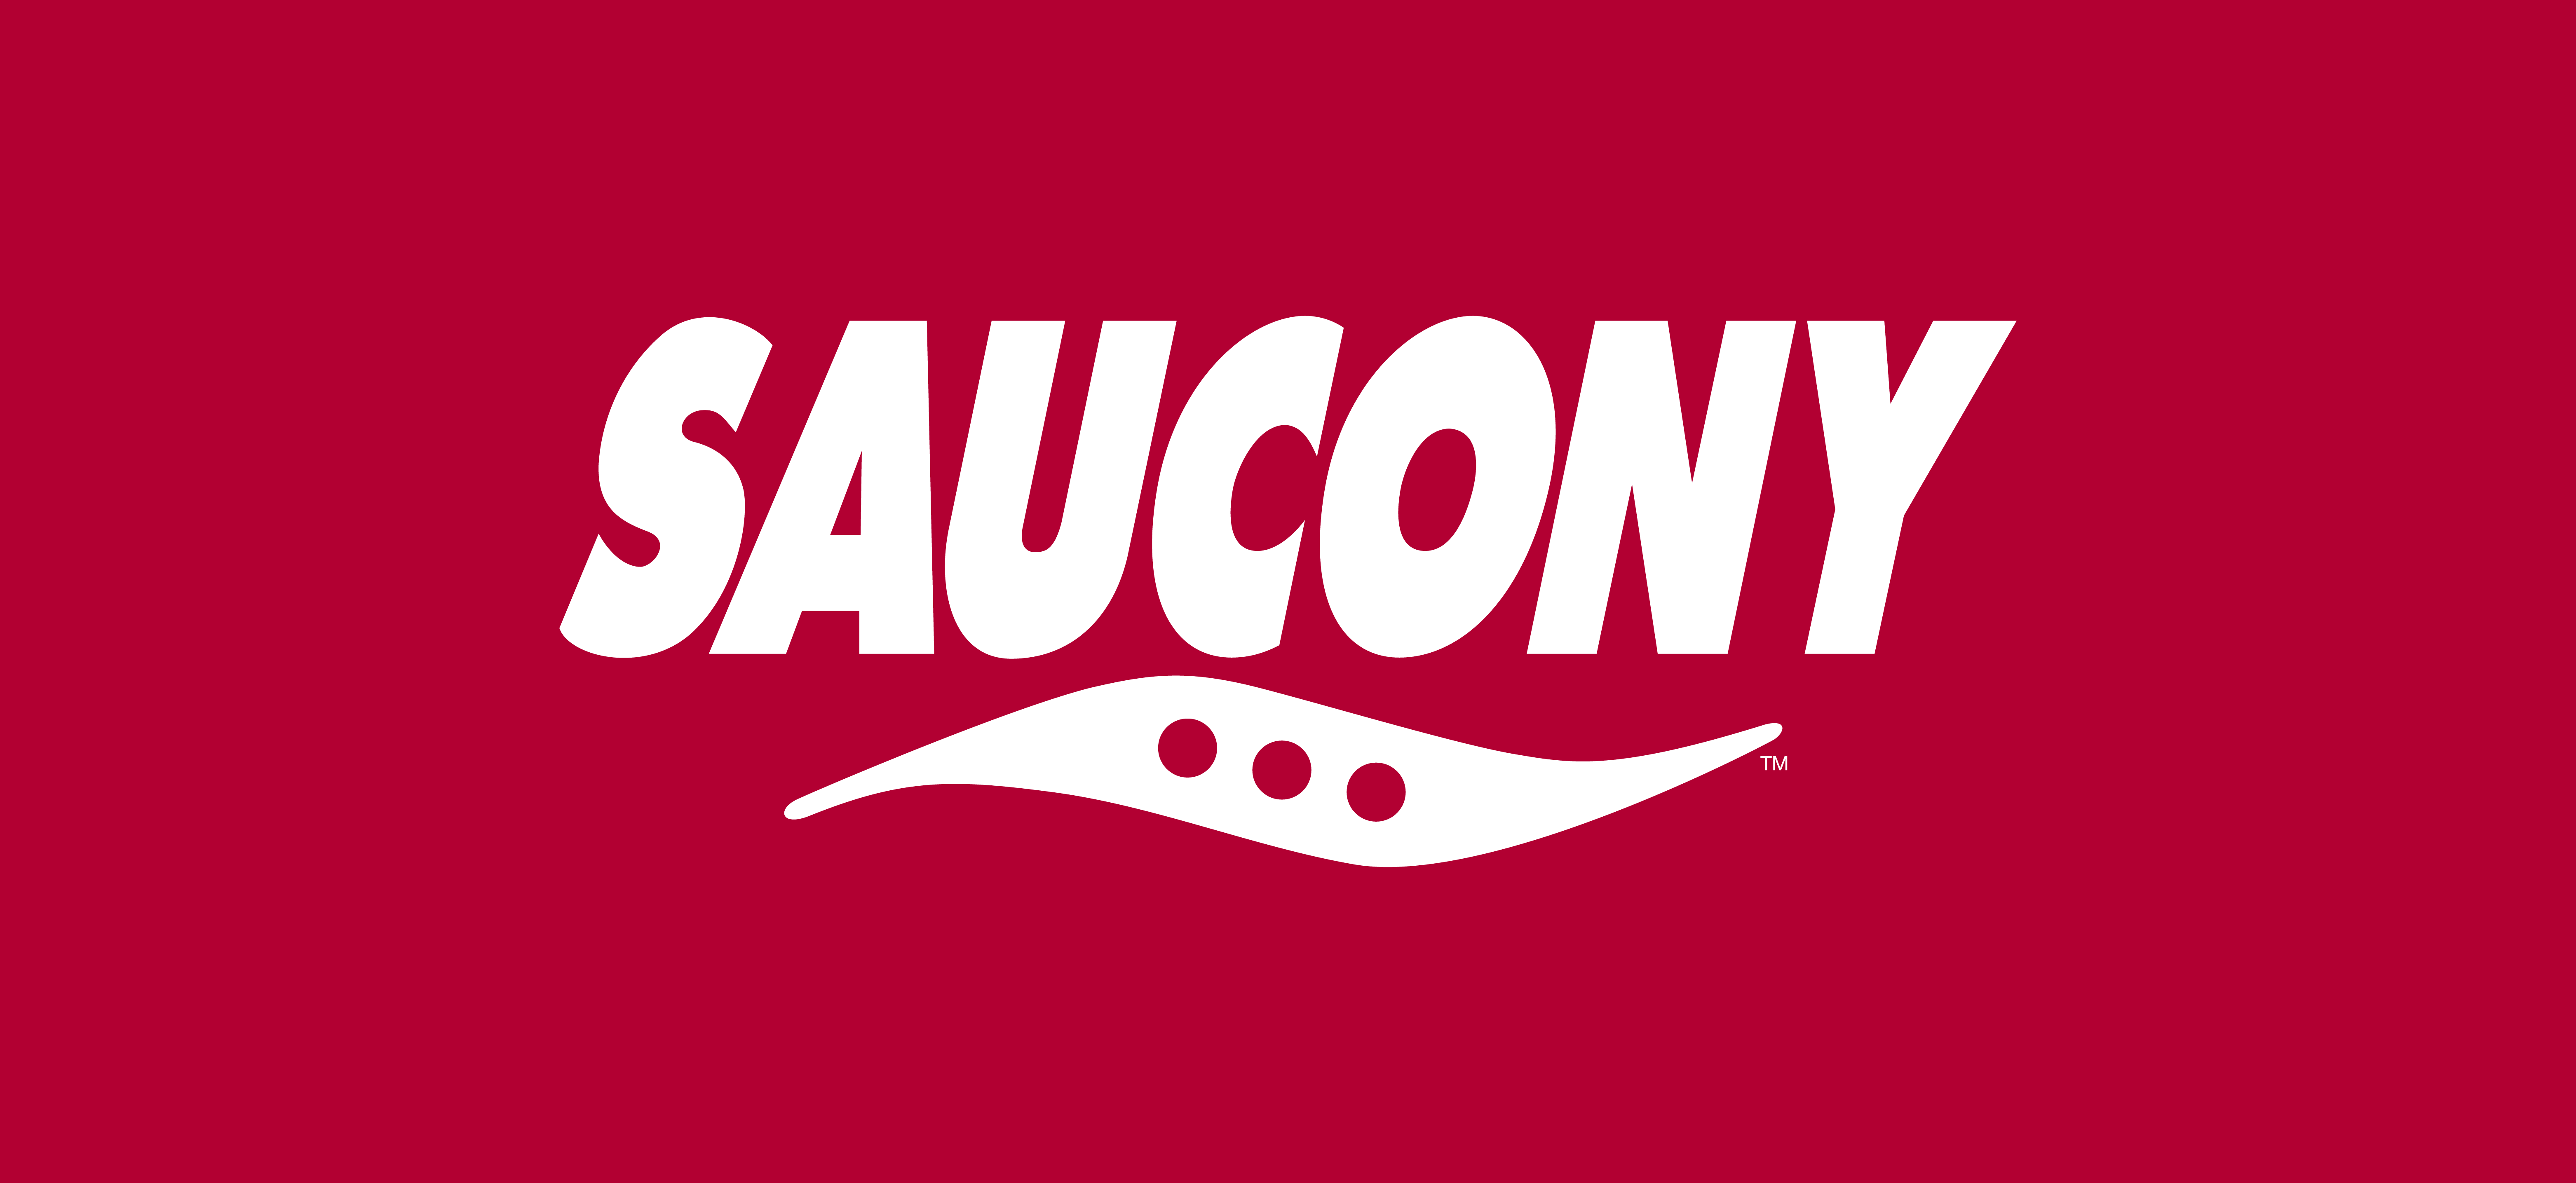 saucony-web-banner-01.png